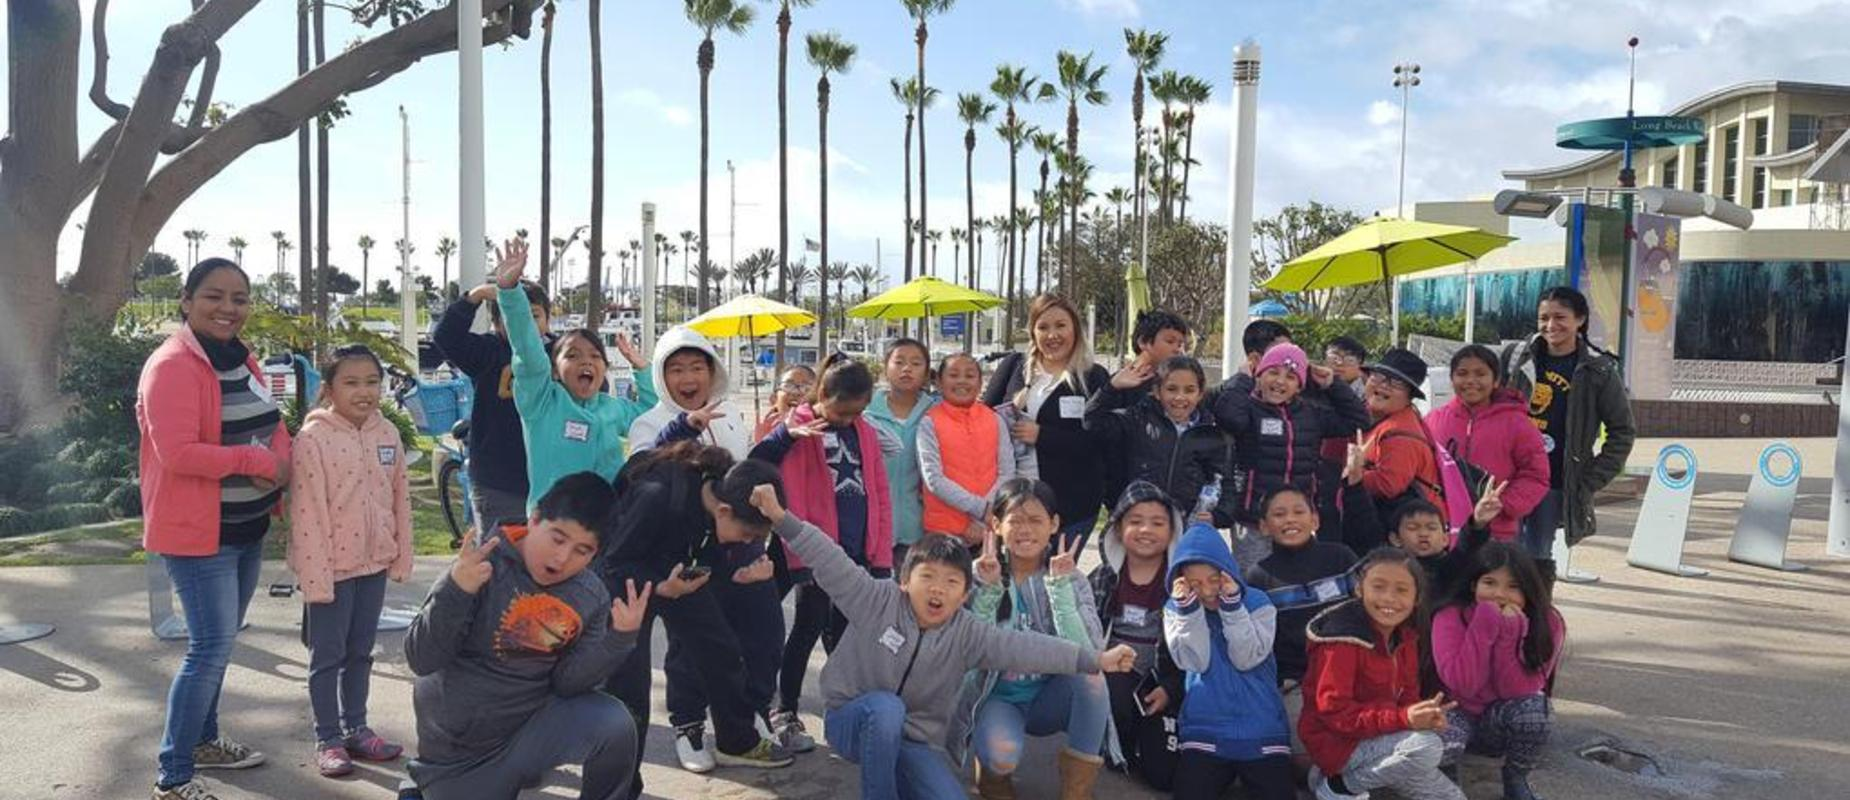 Students and chaperones at outside the Aquarium of the Pacific